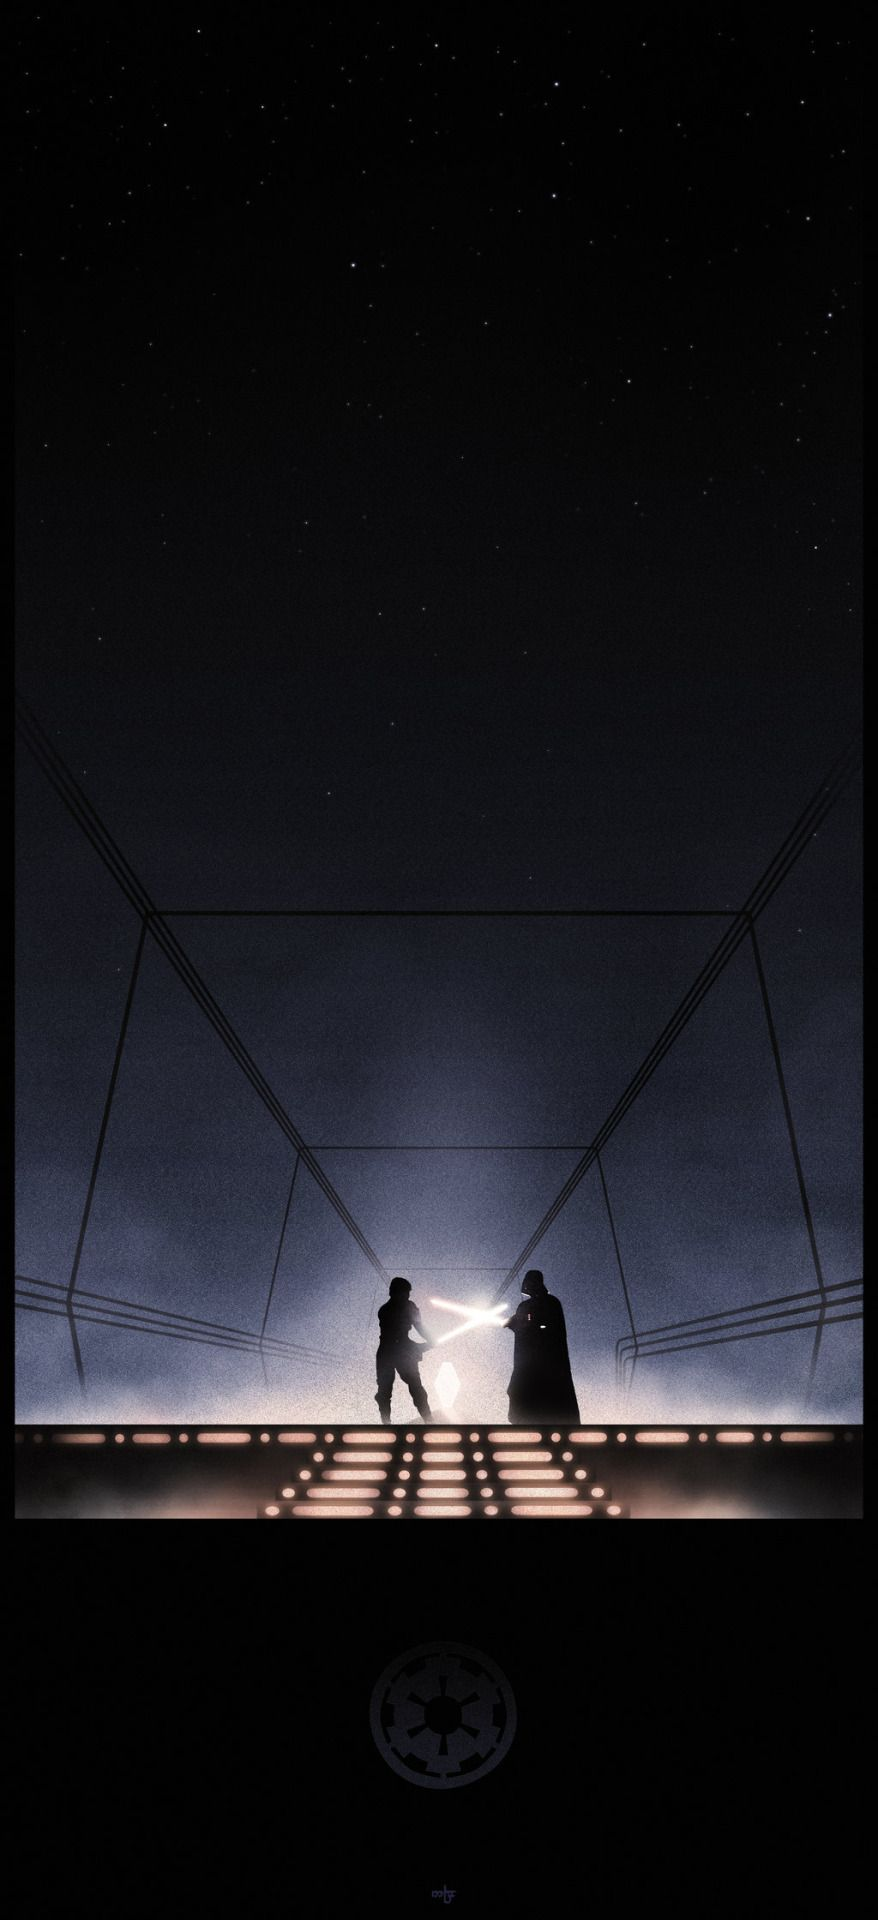 Empire Strikes Back Wallpaper Iphone 878x1920 Wallpaper Teahub Io